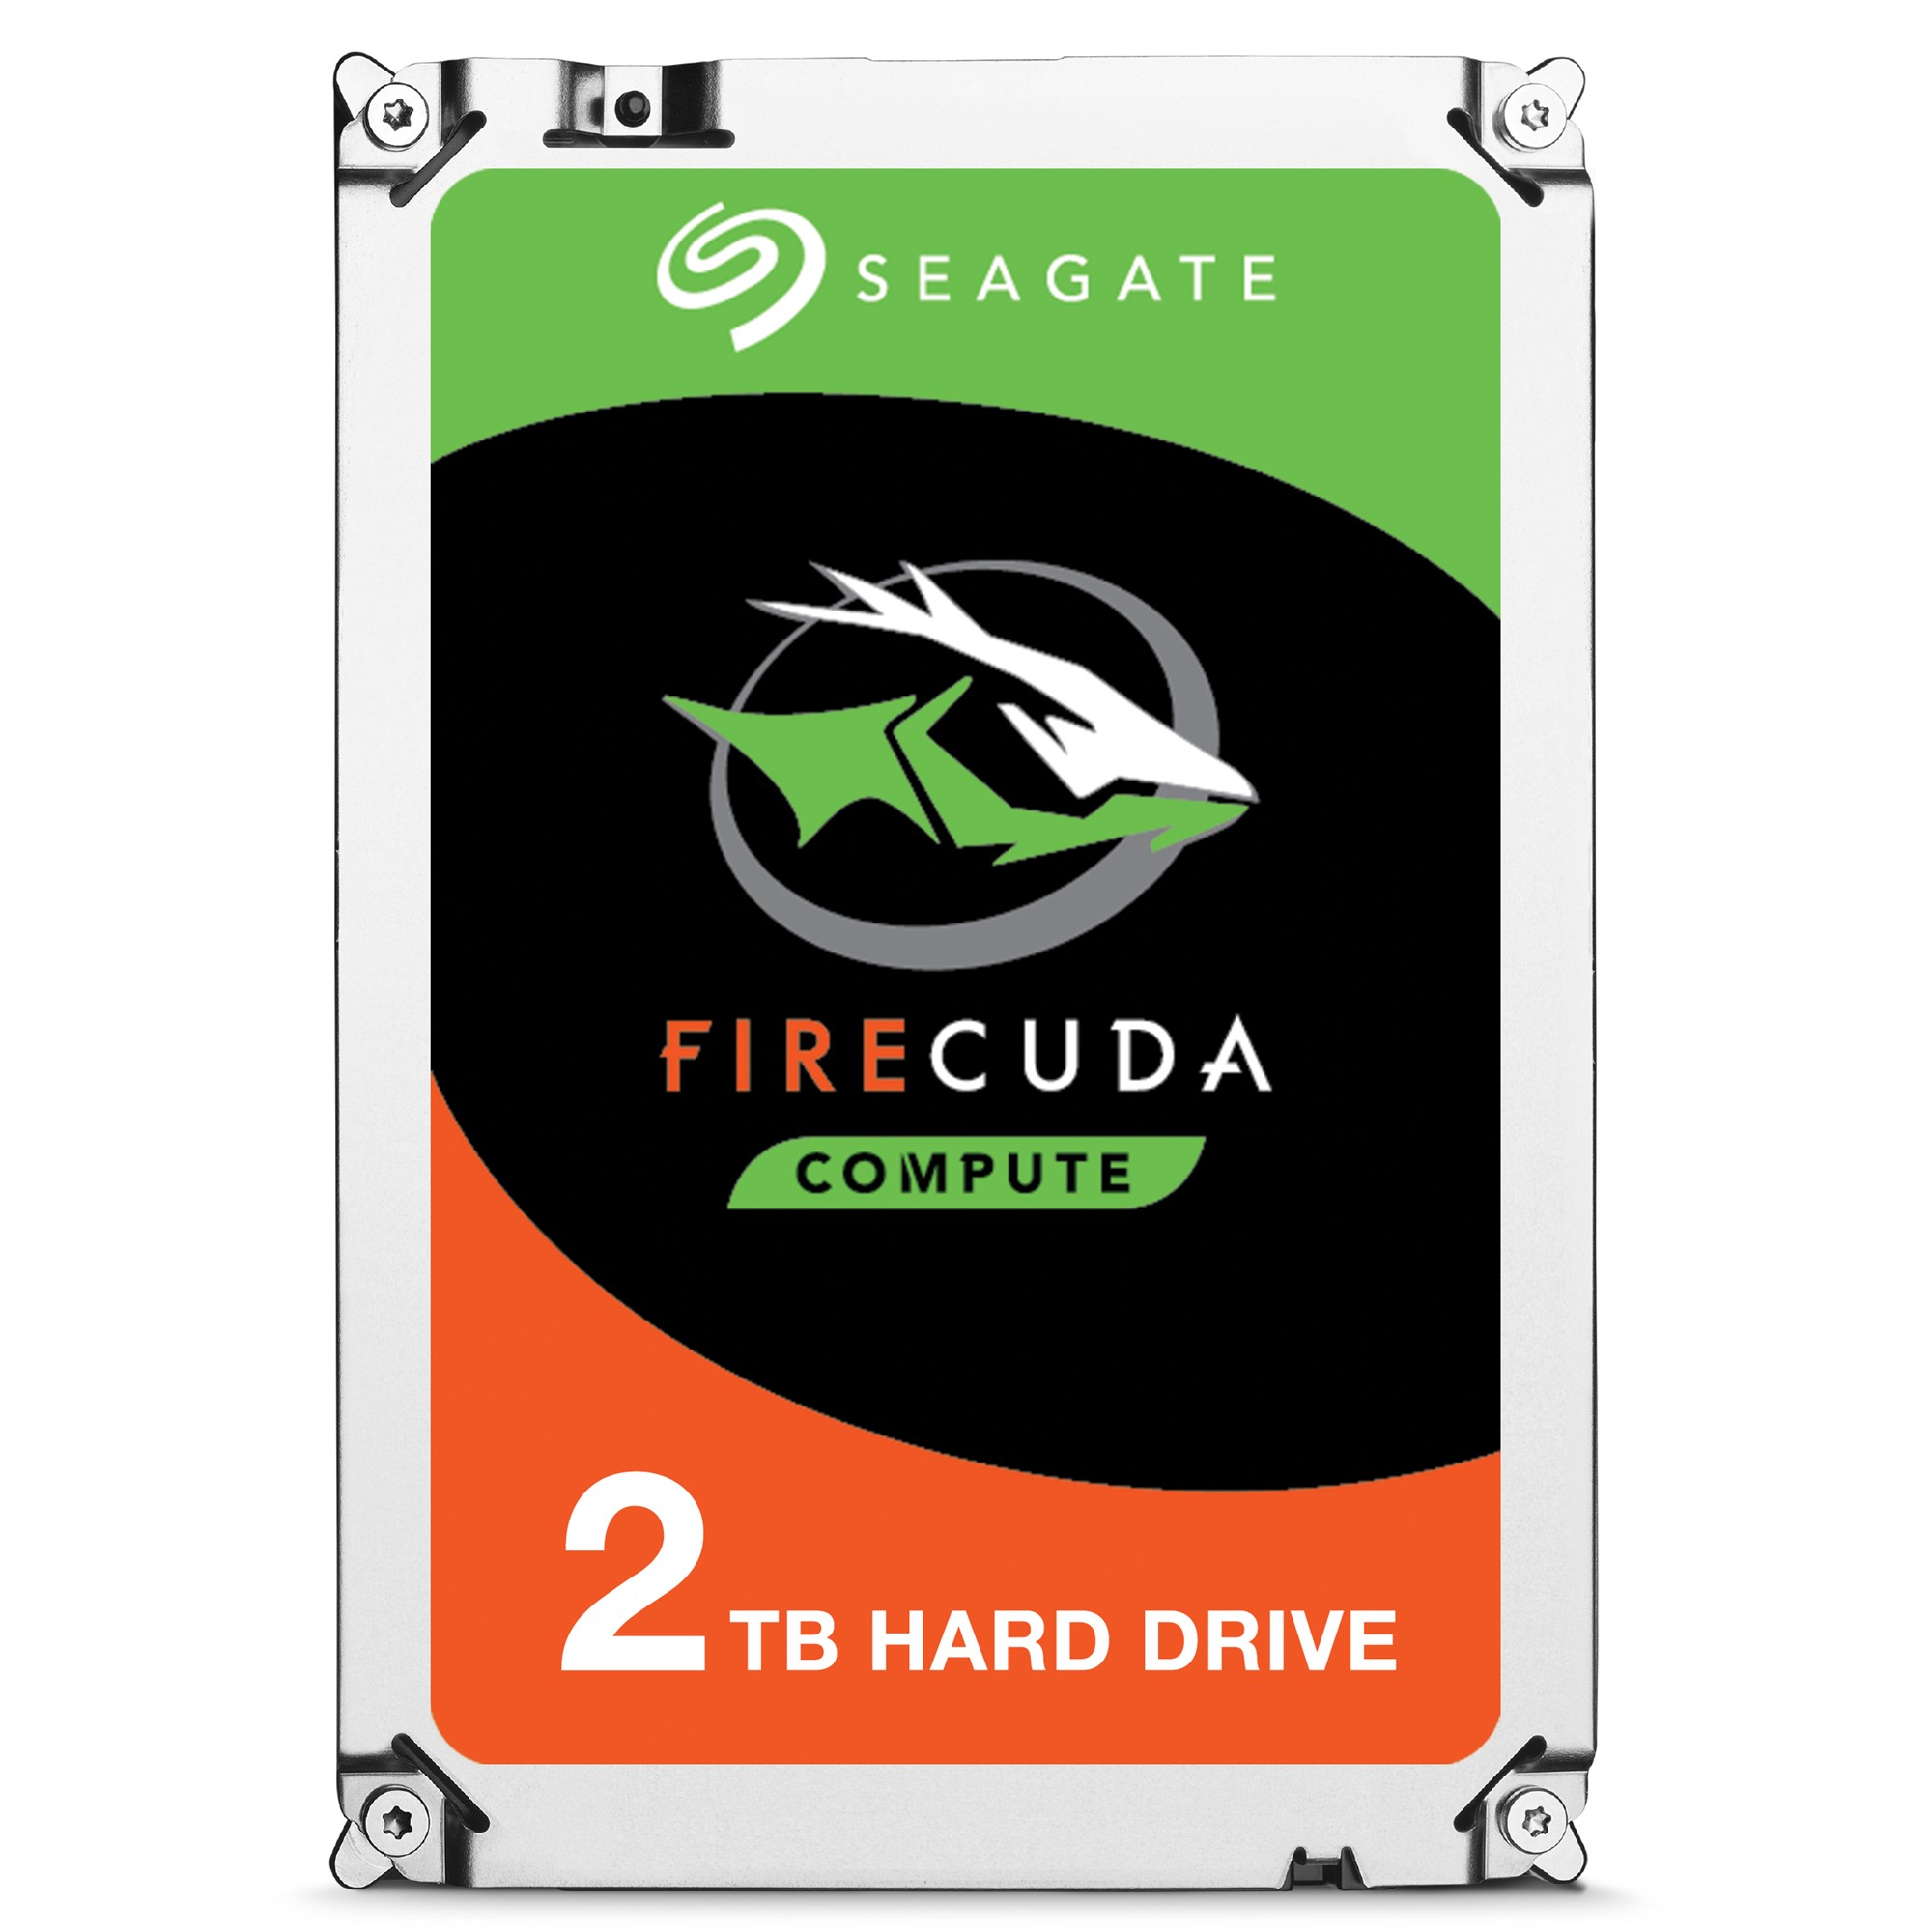 SEAGATE FIRECUDA ST2000DX002 HYBRID-HDD 2000GB SERIAL ATA III INTERNAL HARD DRIVE